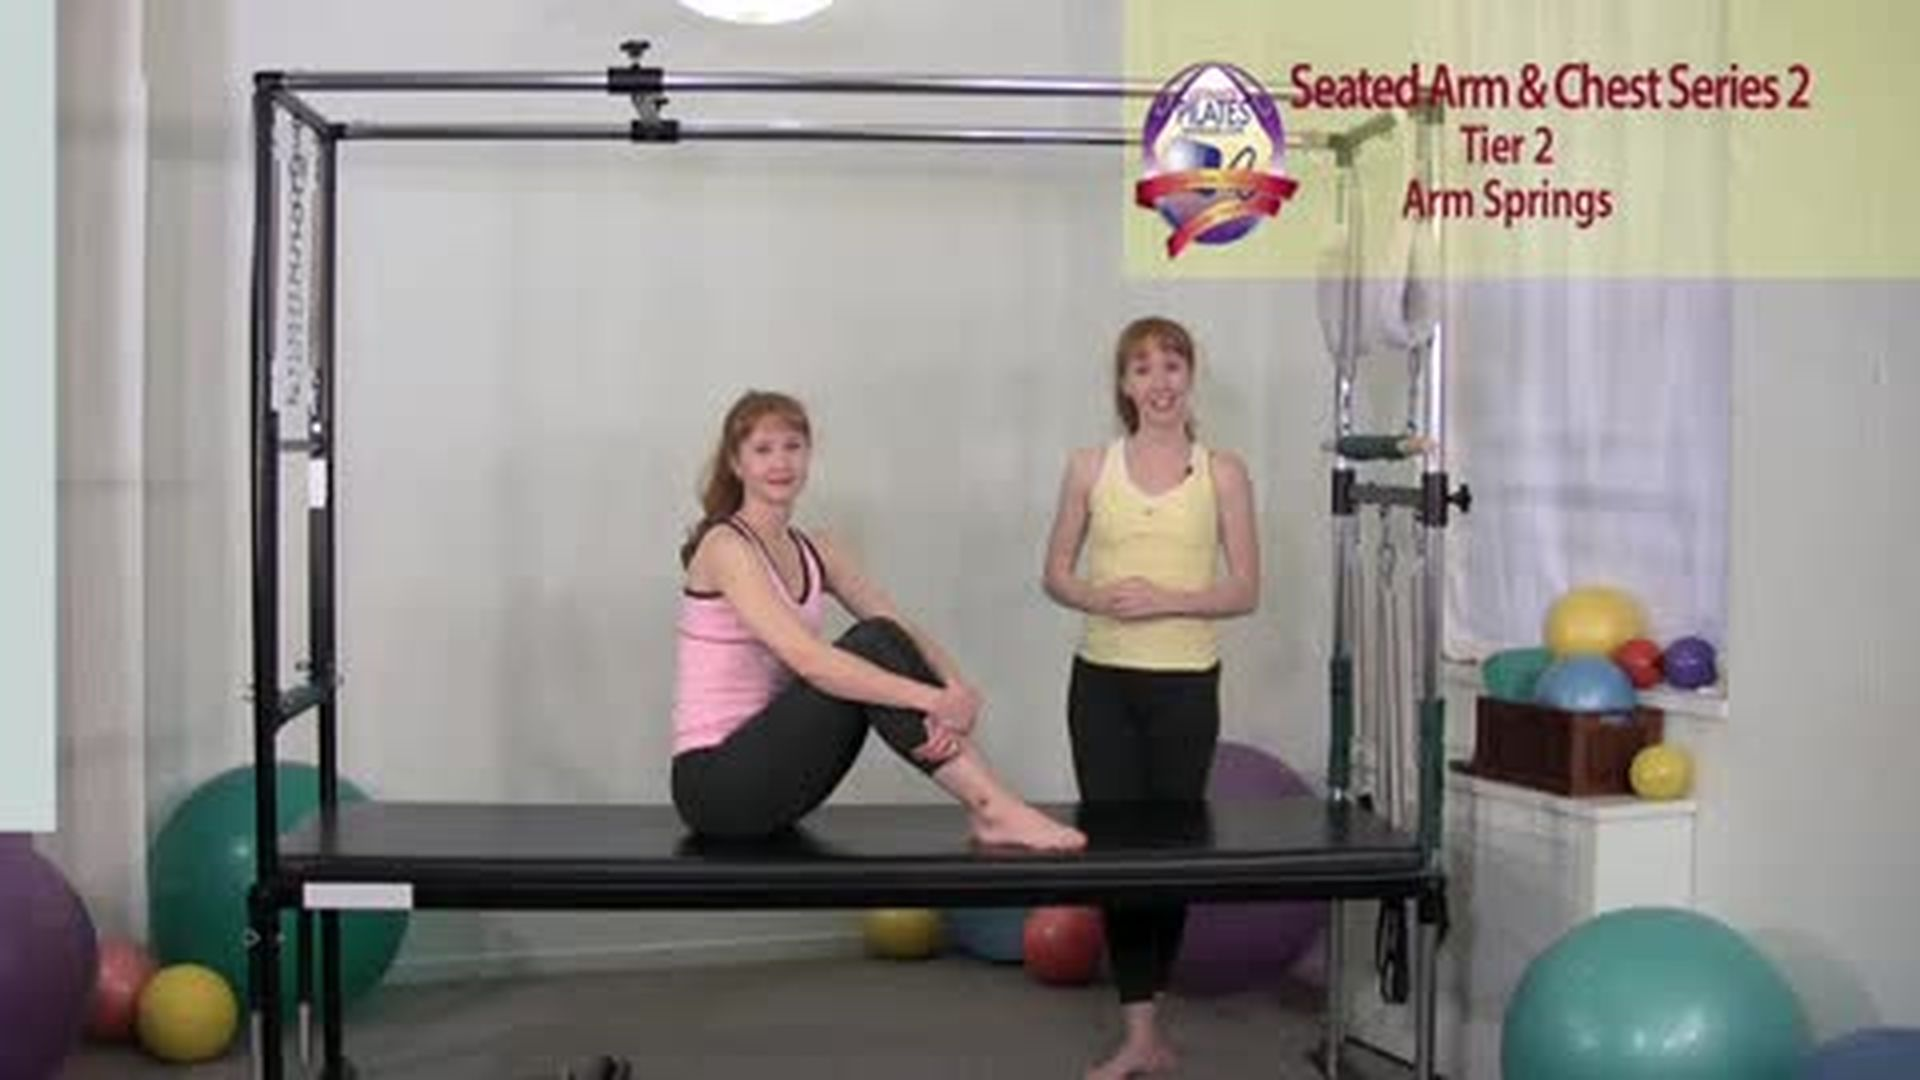 Seated Arm and Chest Series 2